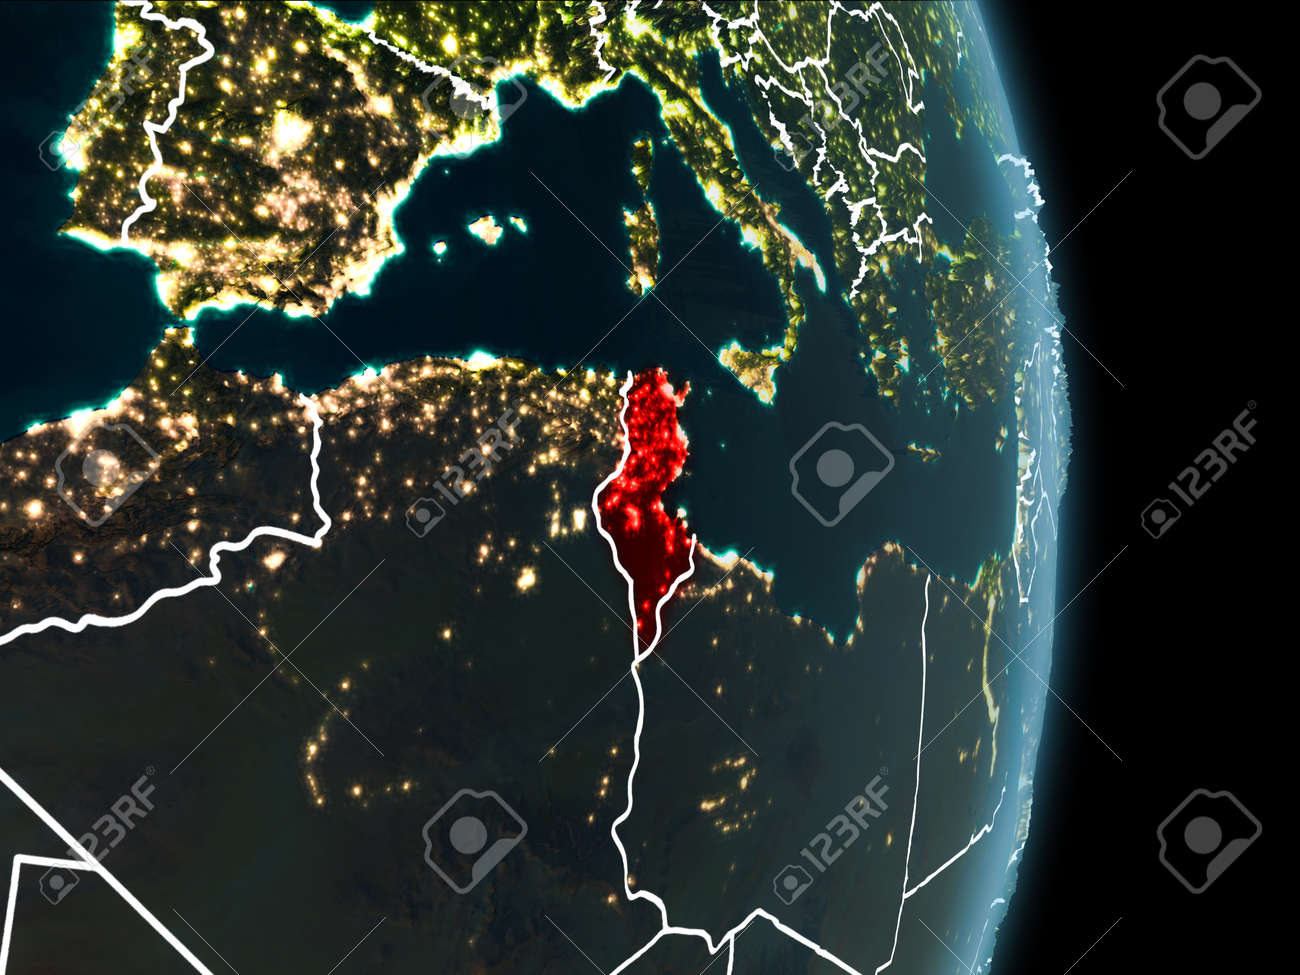 Map of tunisia in red as seen from space on planet earth at night illustration map of tunisia in red as seen from space on planet earth at night with white borderlines and city lights 3d illustration gumiabroncs Images